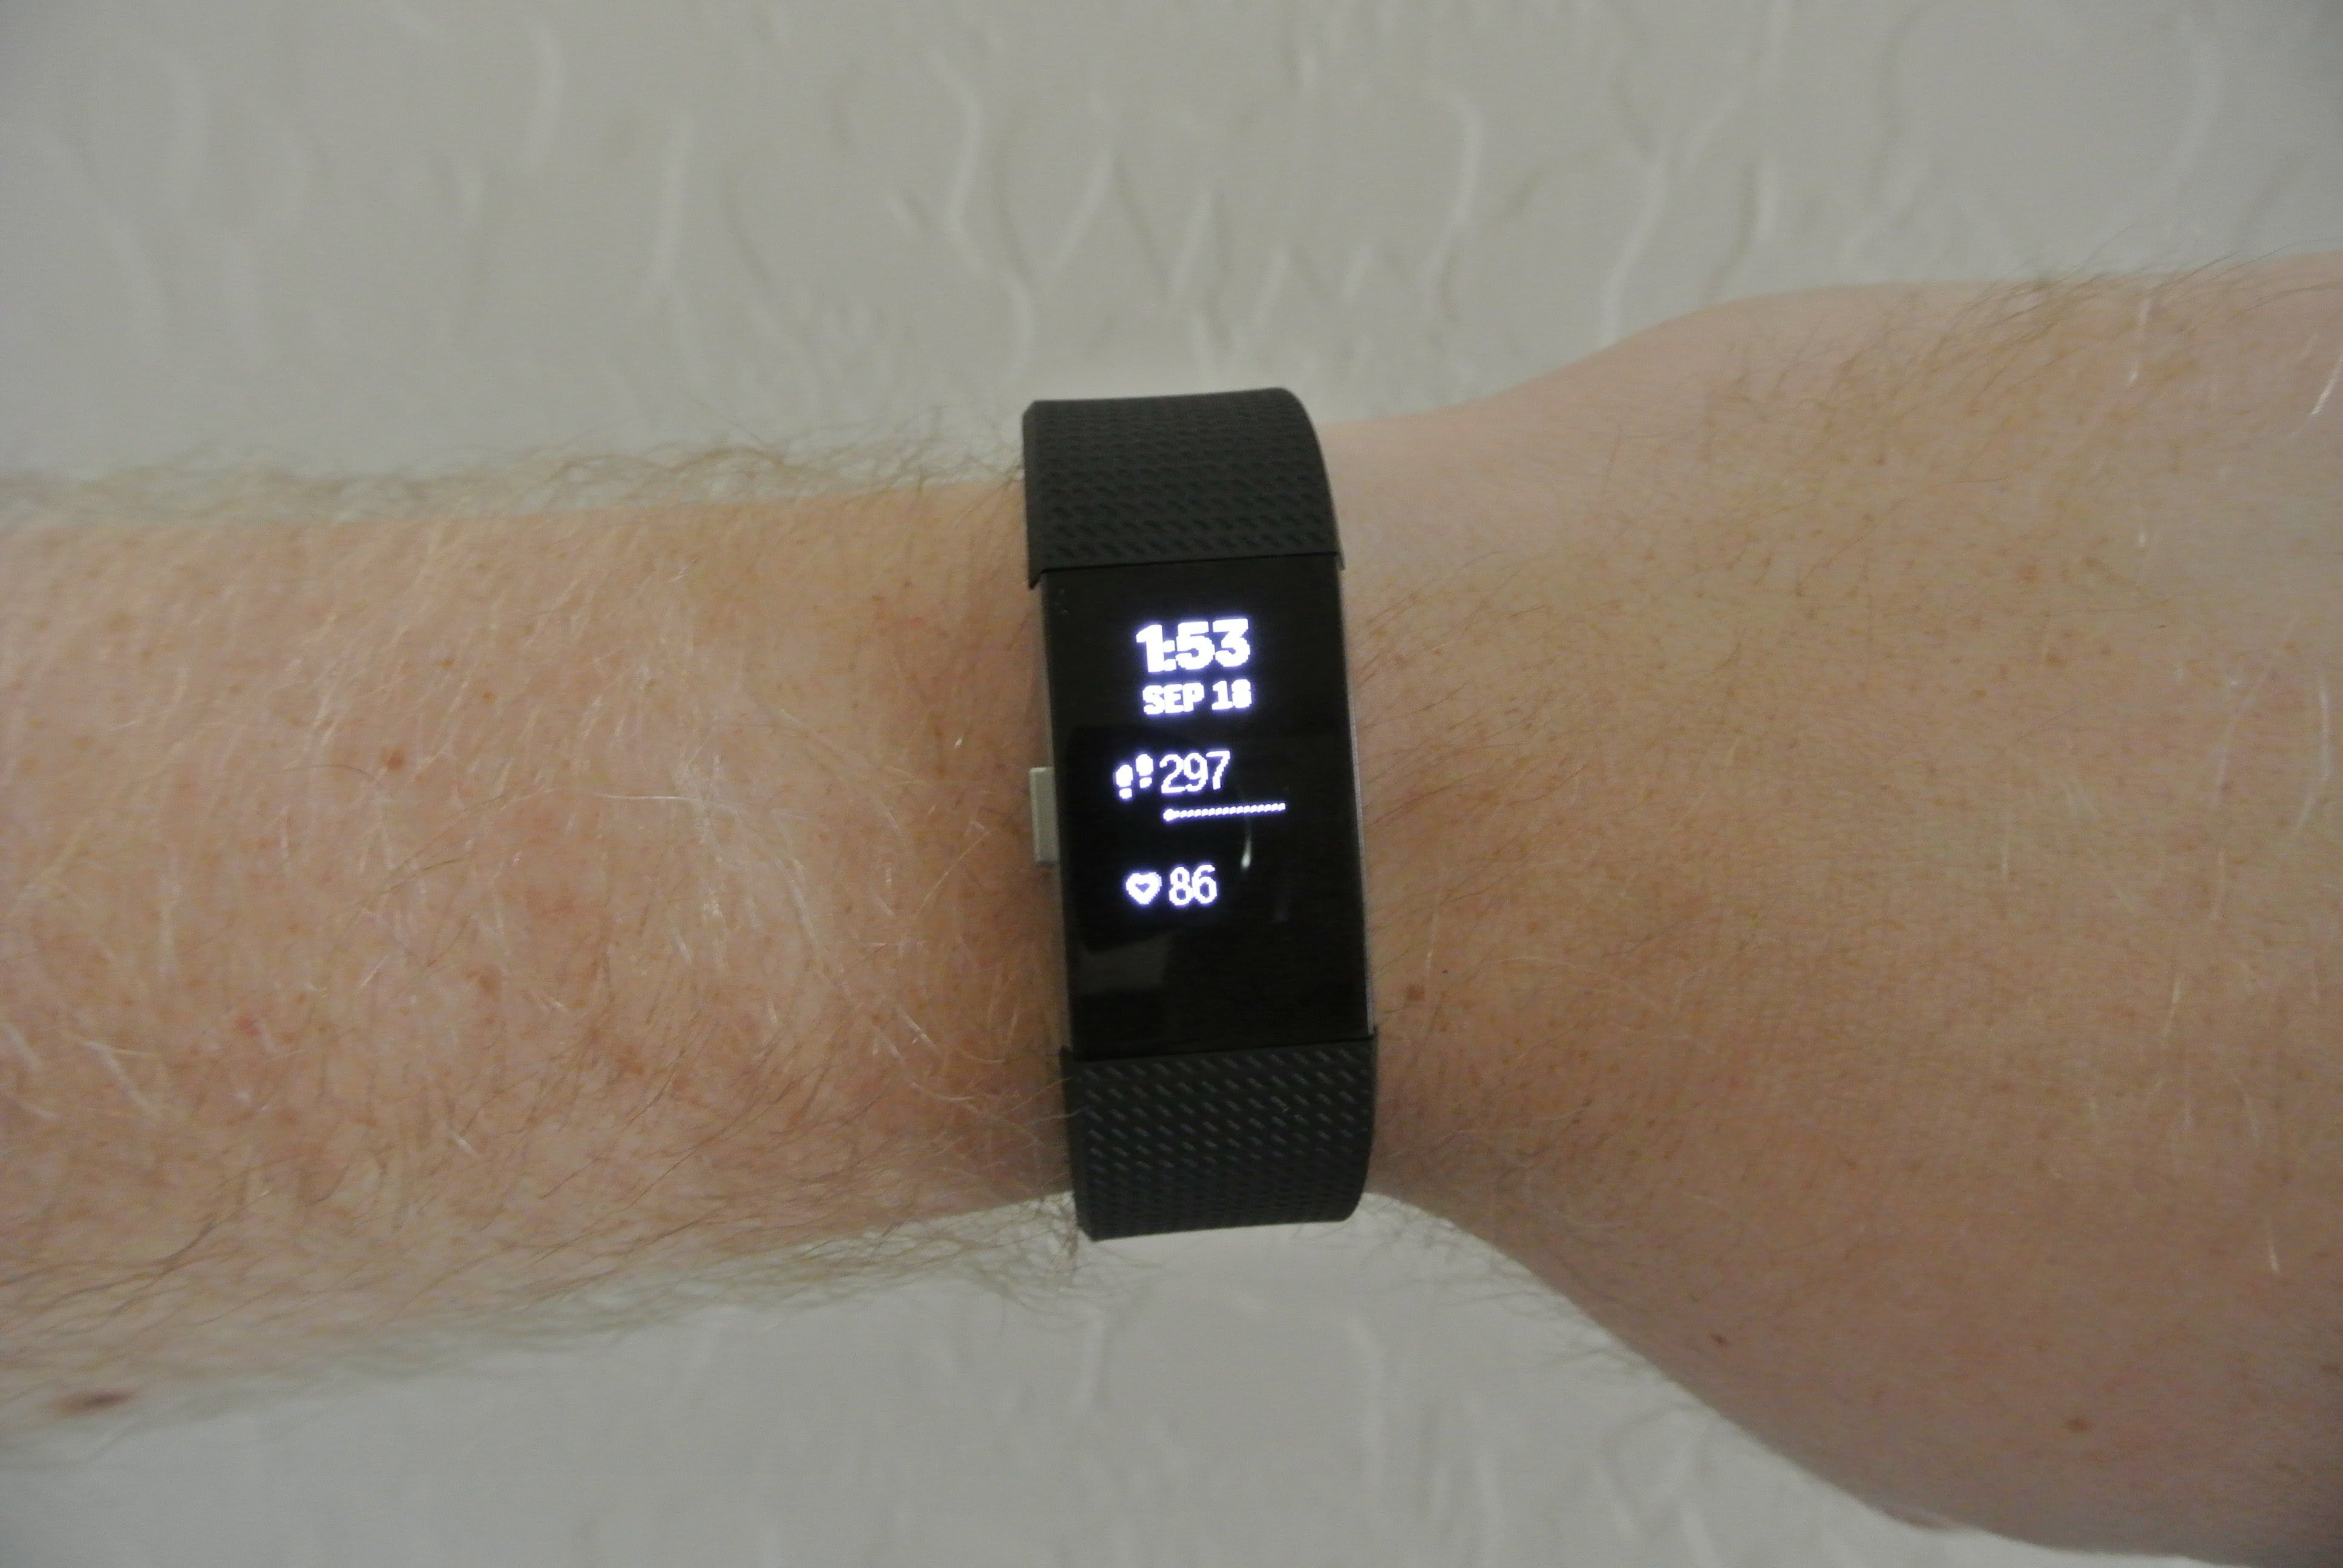 NEW Fitbit Charge HR 2 Unboxing and Setup! | FITBIT | Fitbit charge